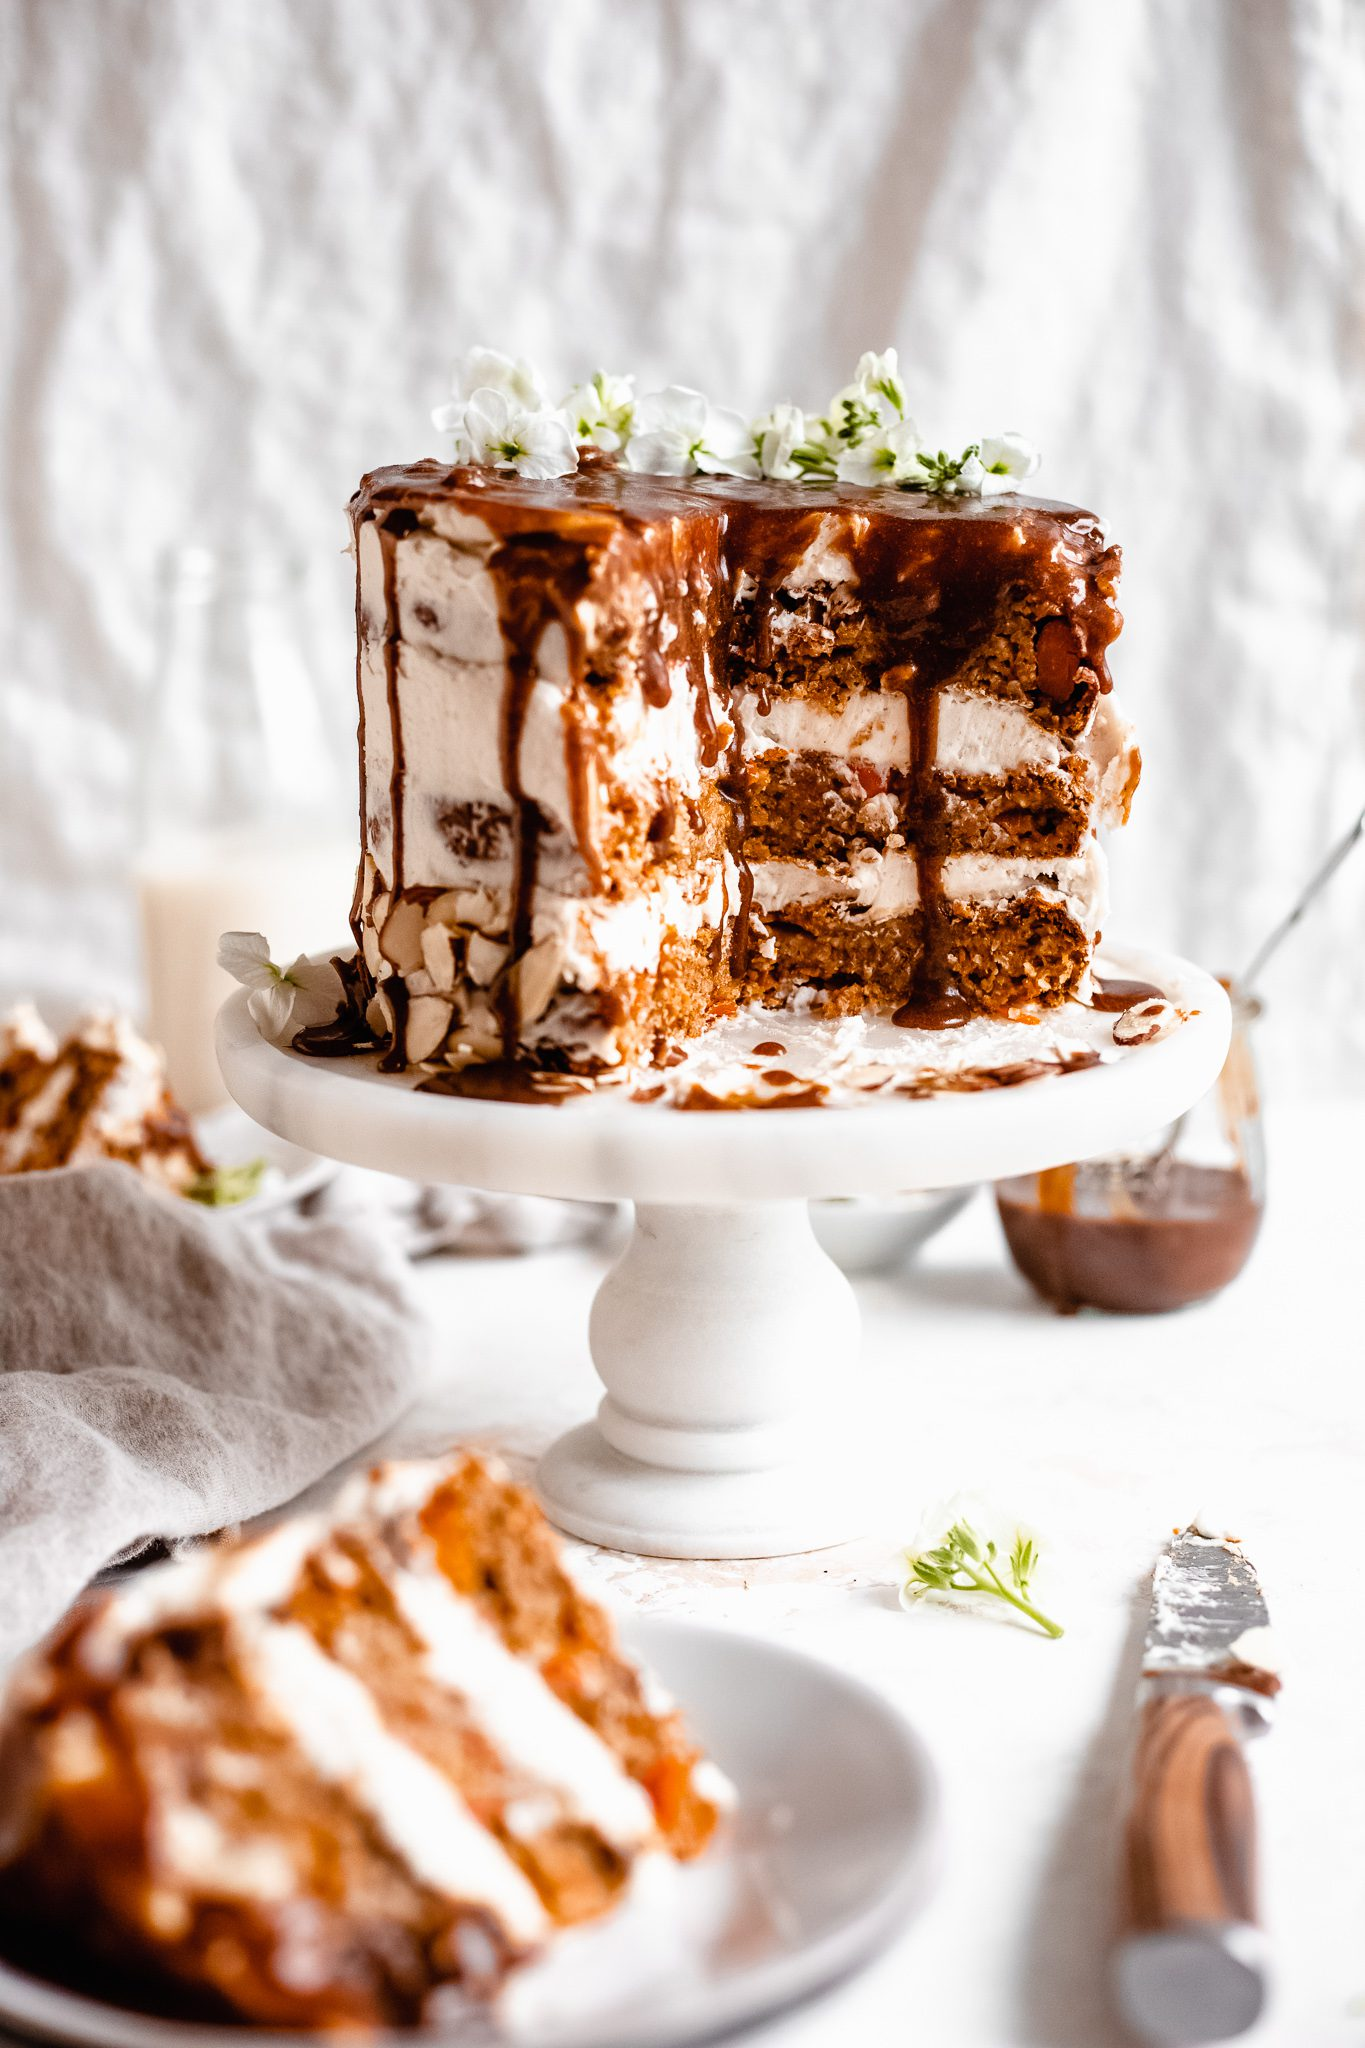 The Best Vegan Carrot Cake (Gluten Free)